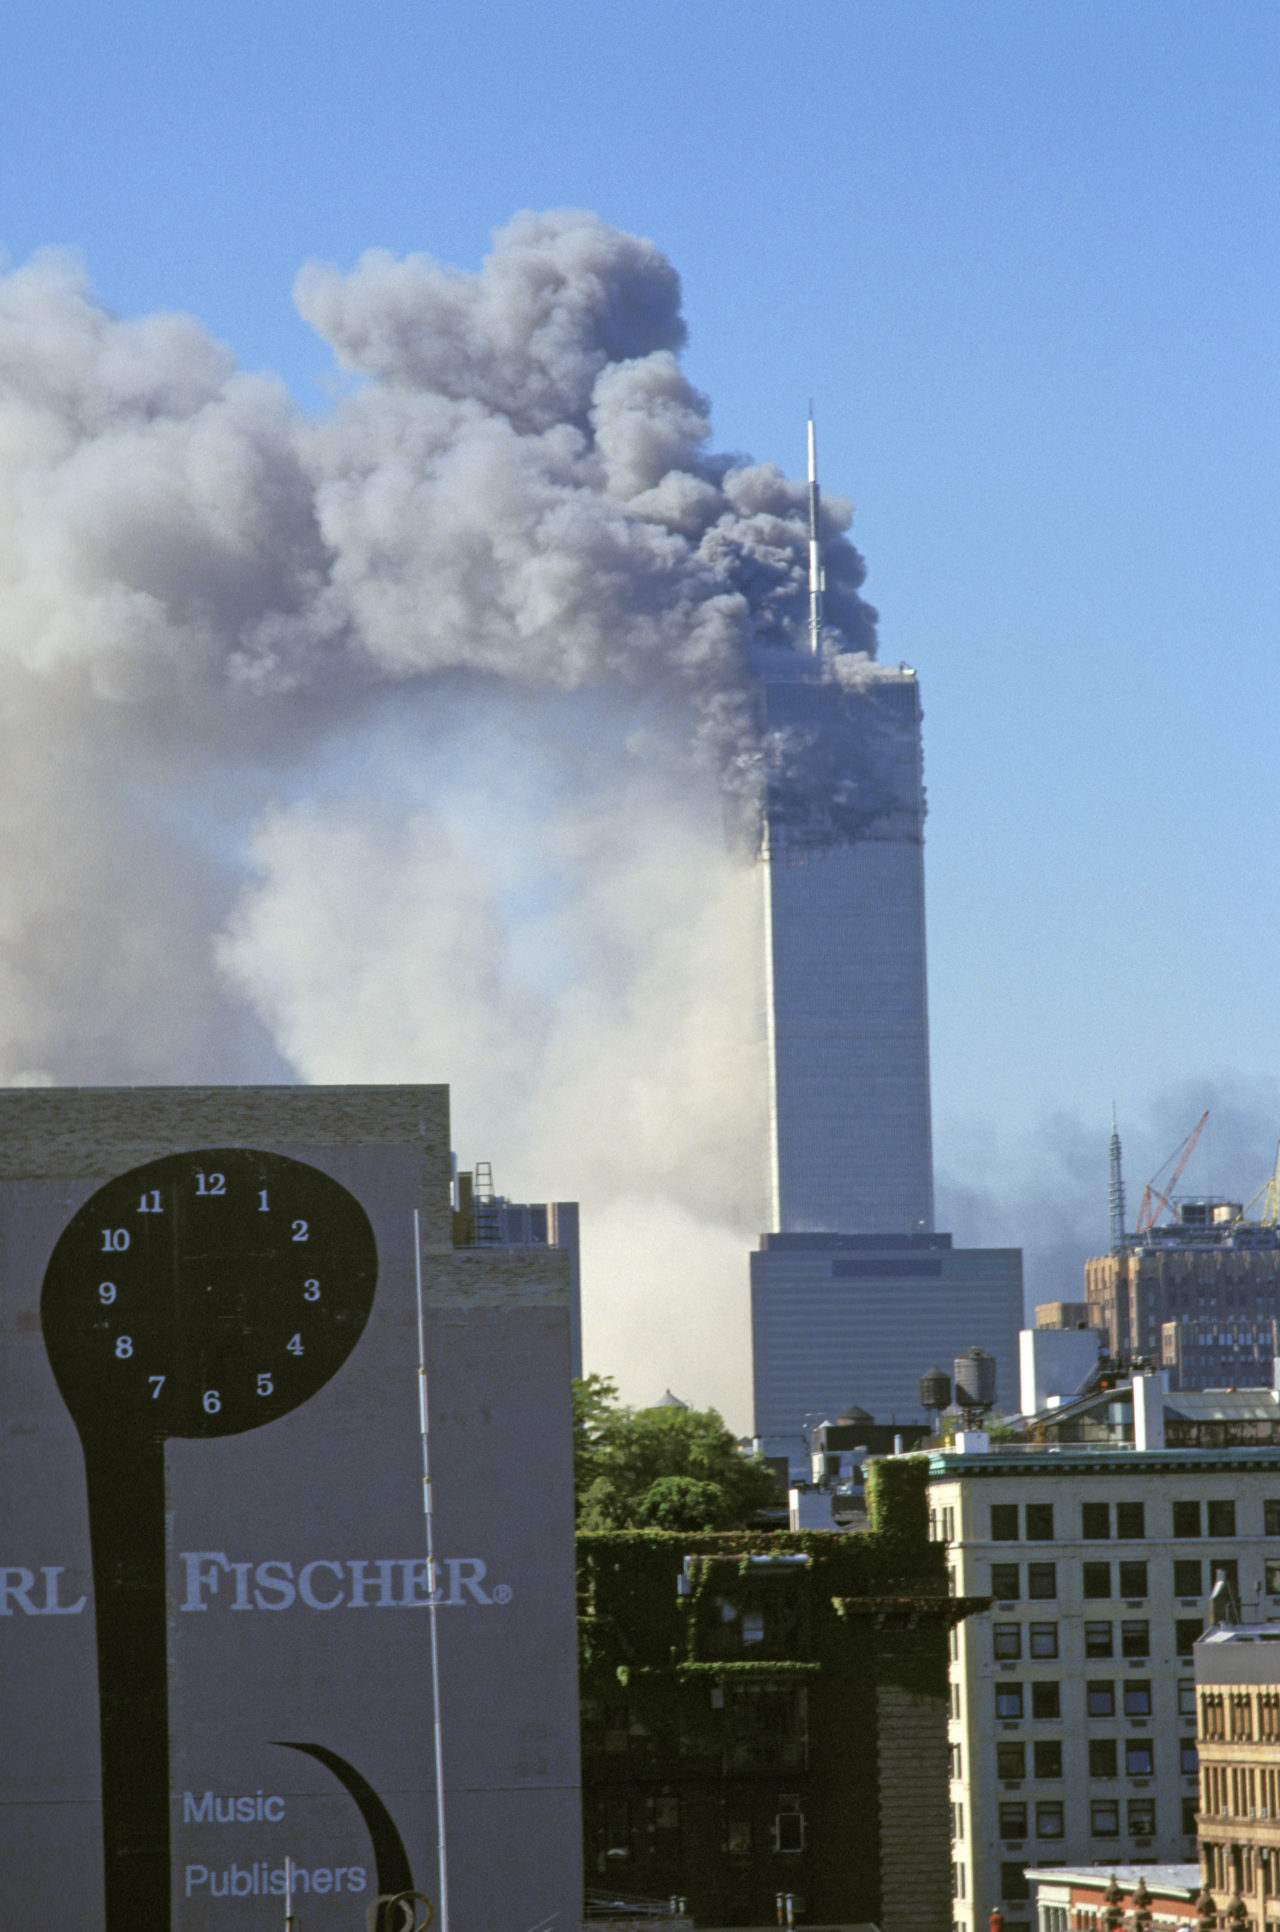 New York City, 9/11/01, World Trade Center Attack.